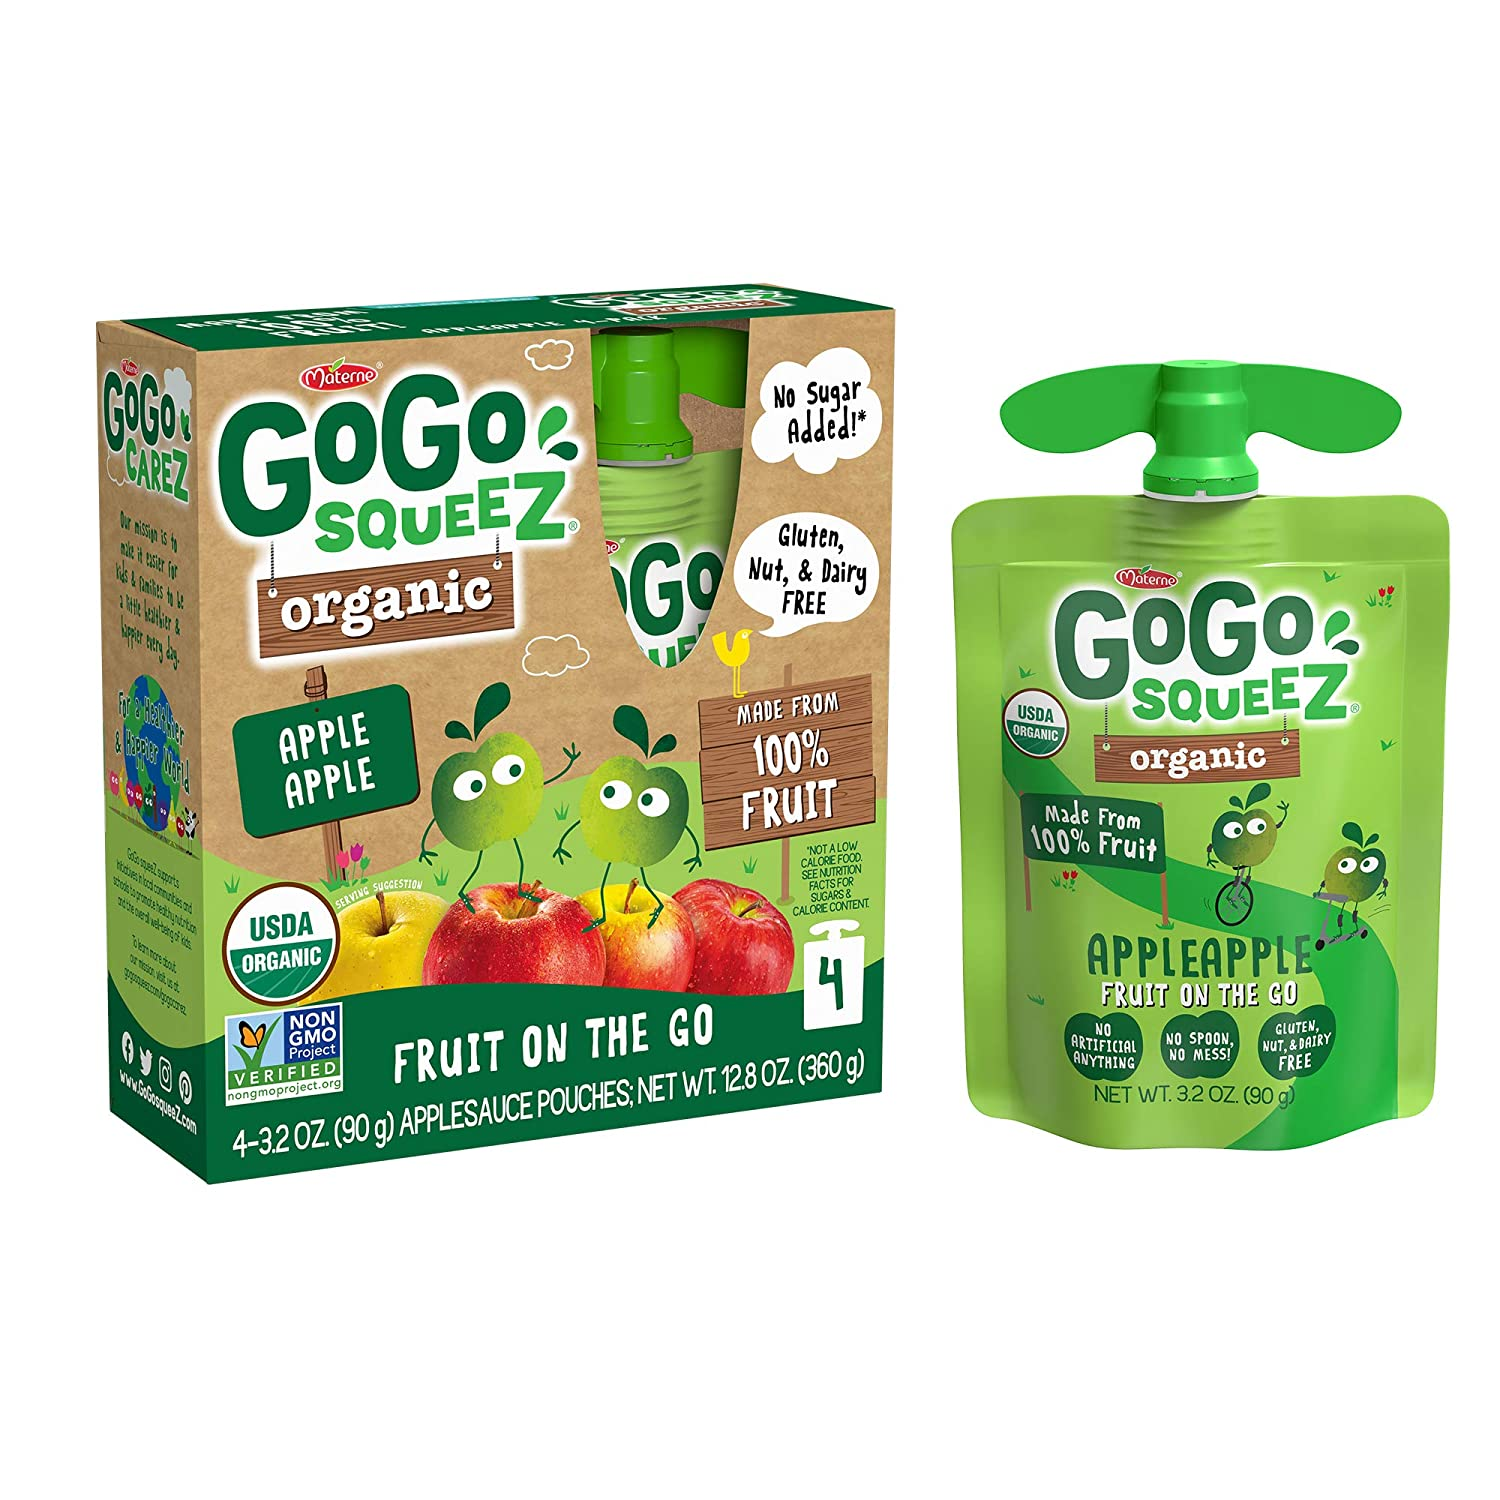 GoGo squeeZ Organic Applesauce on the Go, Apple Apple, 3.2 Ounce (48 Pouches), Gluten Free, Vegan Friendly, Unsweetened Applesauce, Recloseable, BPA Free Pouches (Packaging May Vary)